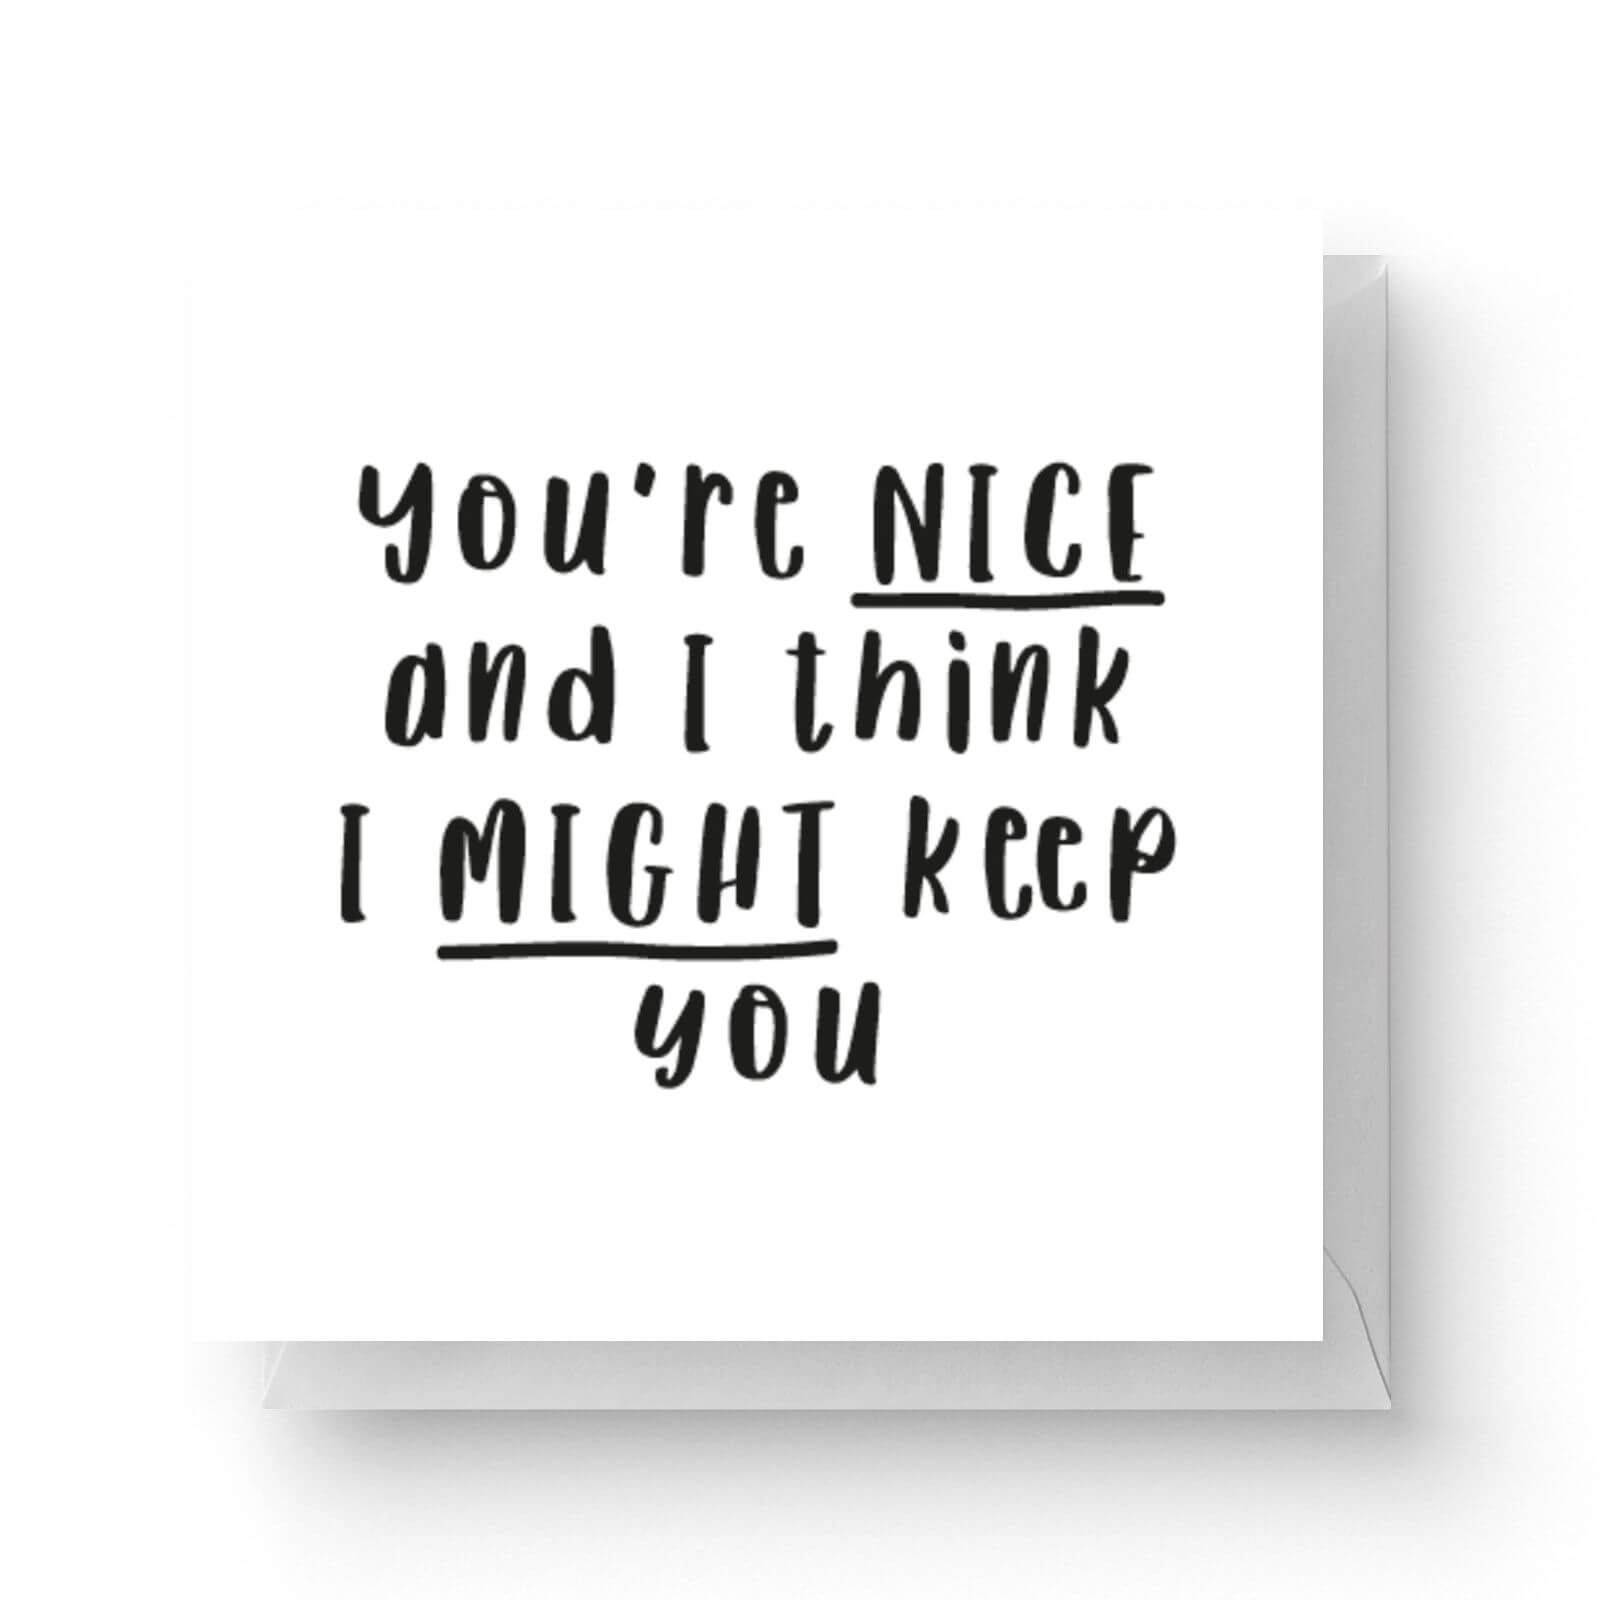 Image of You're Nice And I Think I Might Keep You Square Greetings Card (14.8cm x 14.8cm)